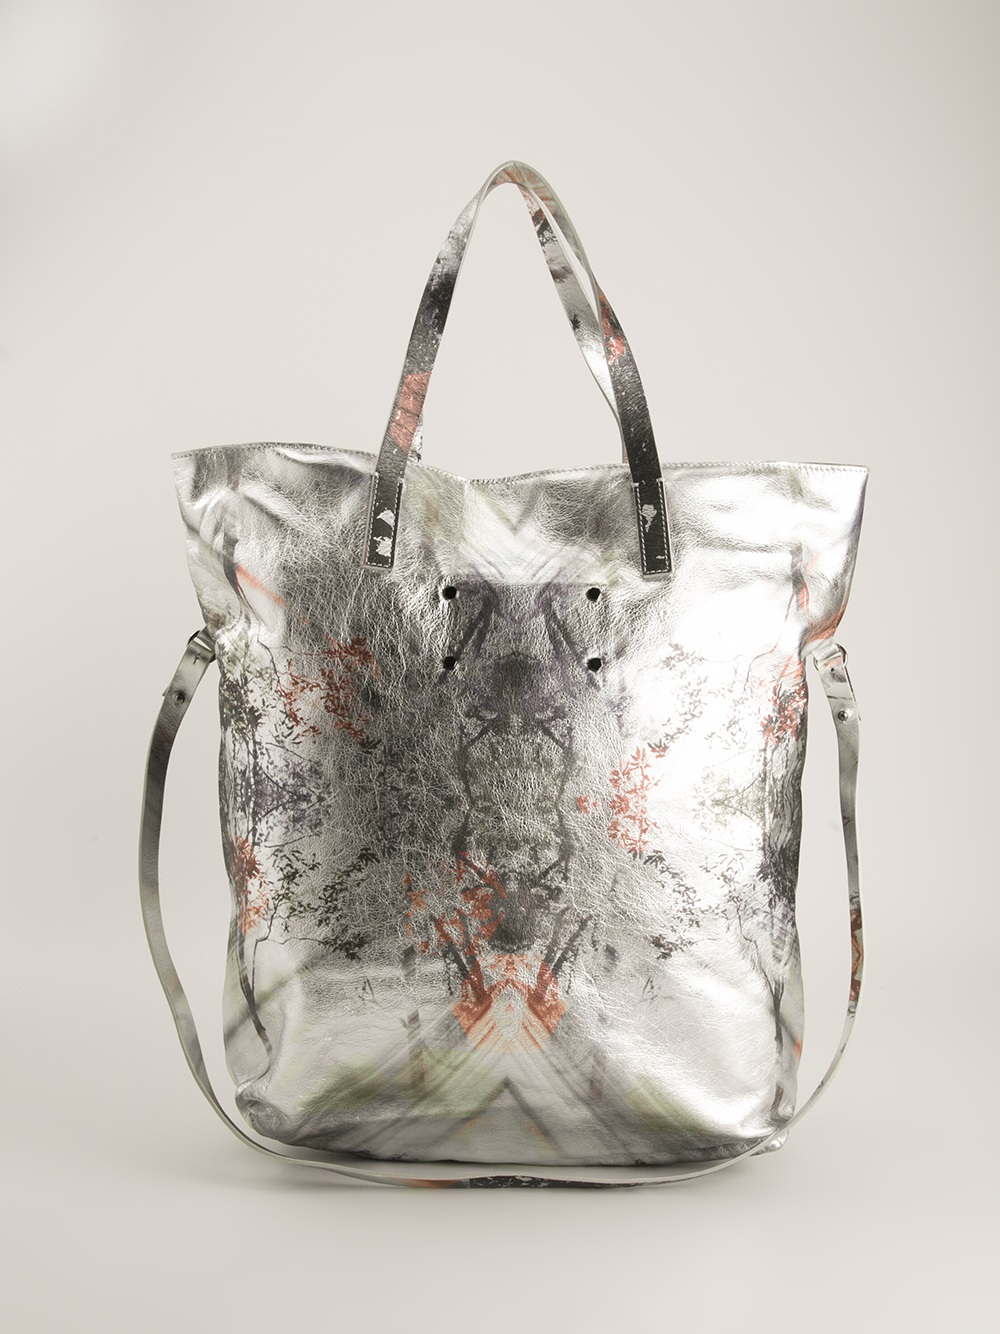 A Brand Apart Kaleidoscope Shopper Tote in Metallic